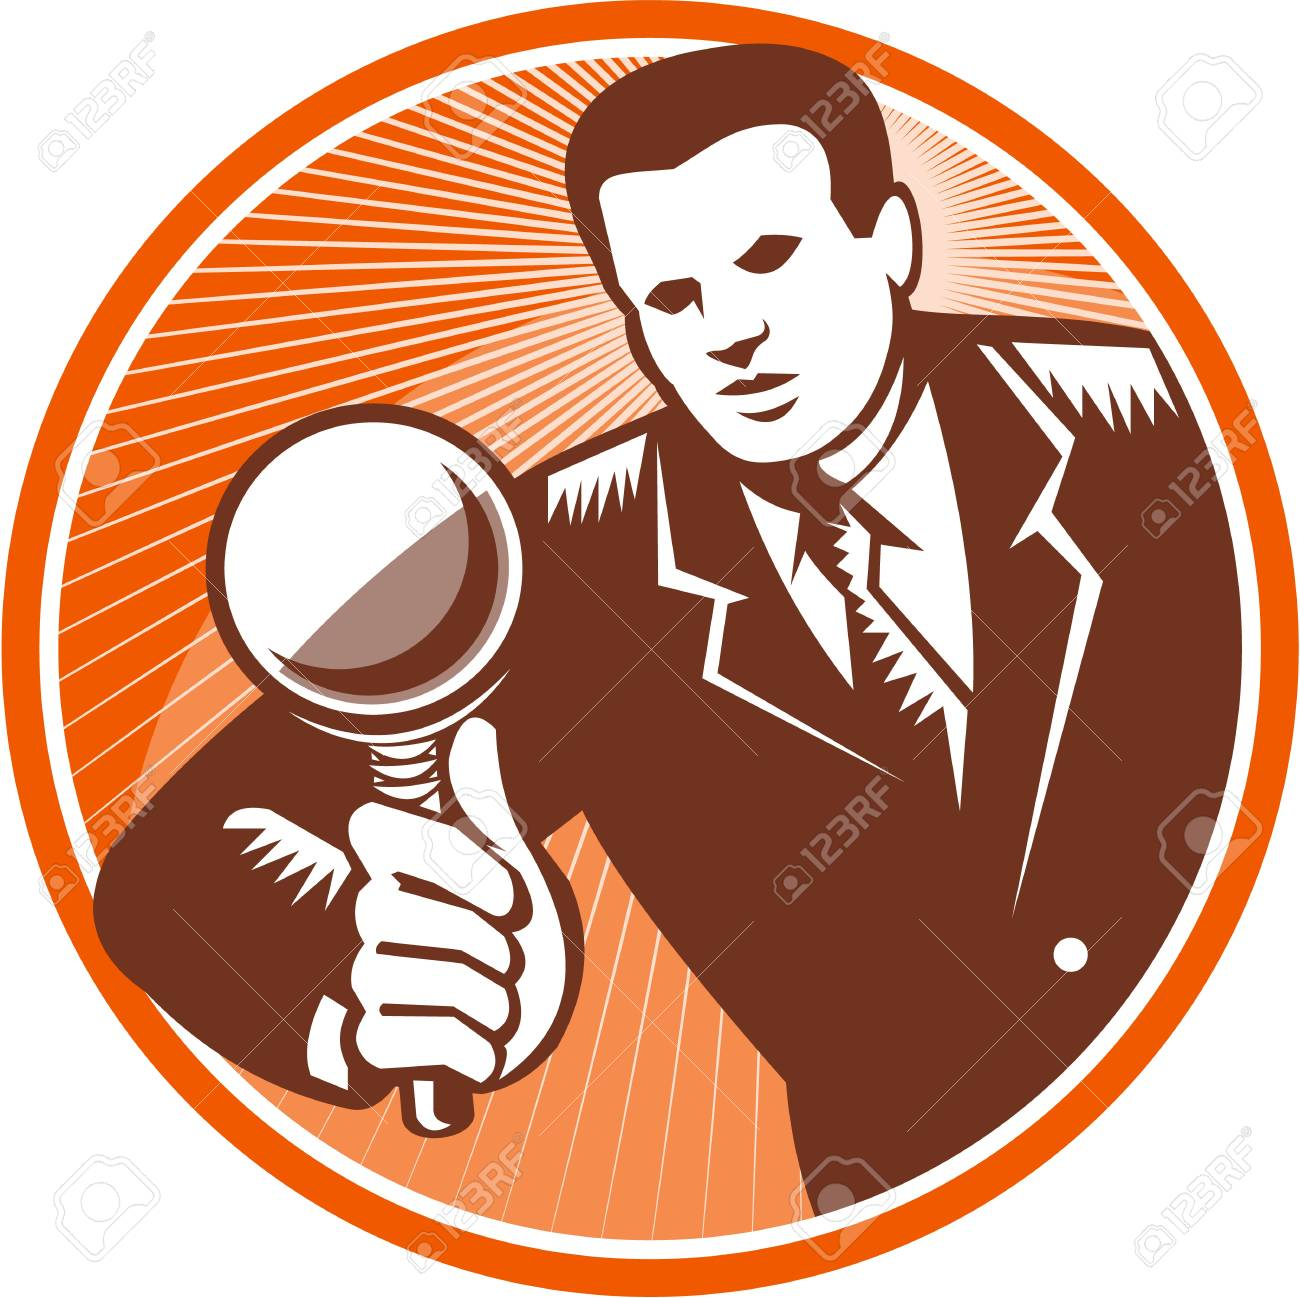 Illustration of a businessman facing front looking holding magnifying glass lens done in retro woodcut style set inside circle. Stock Vector - 21699926